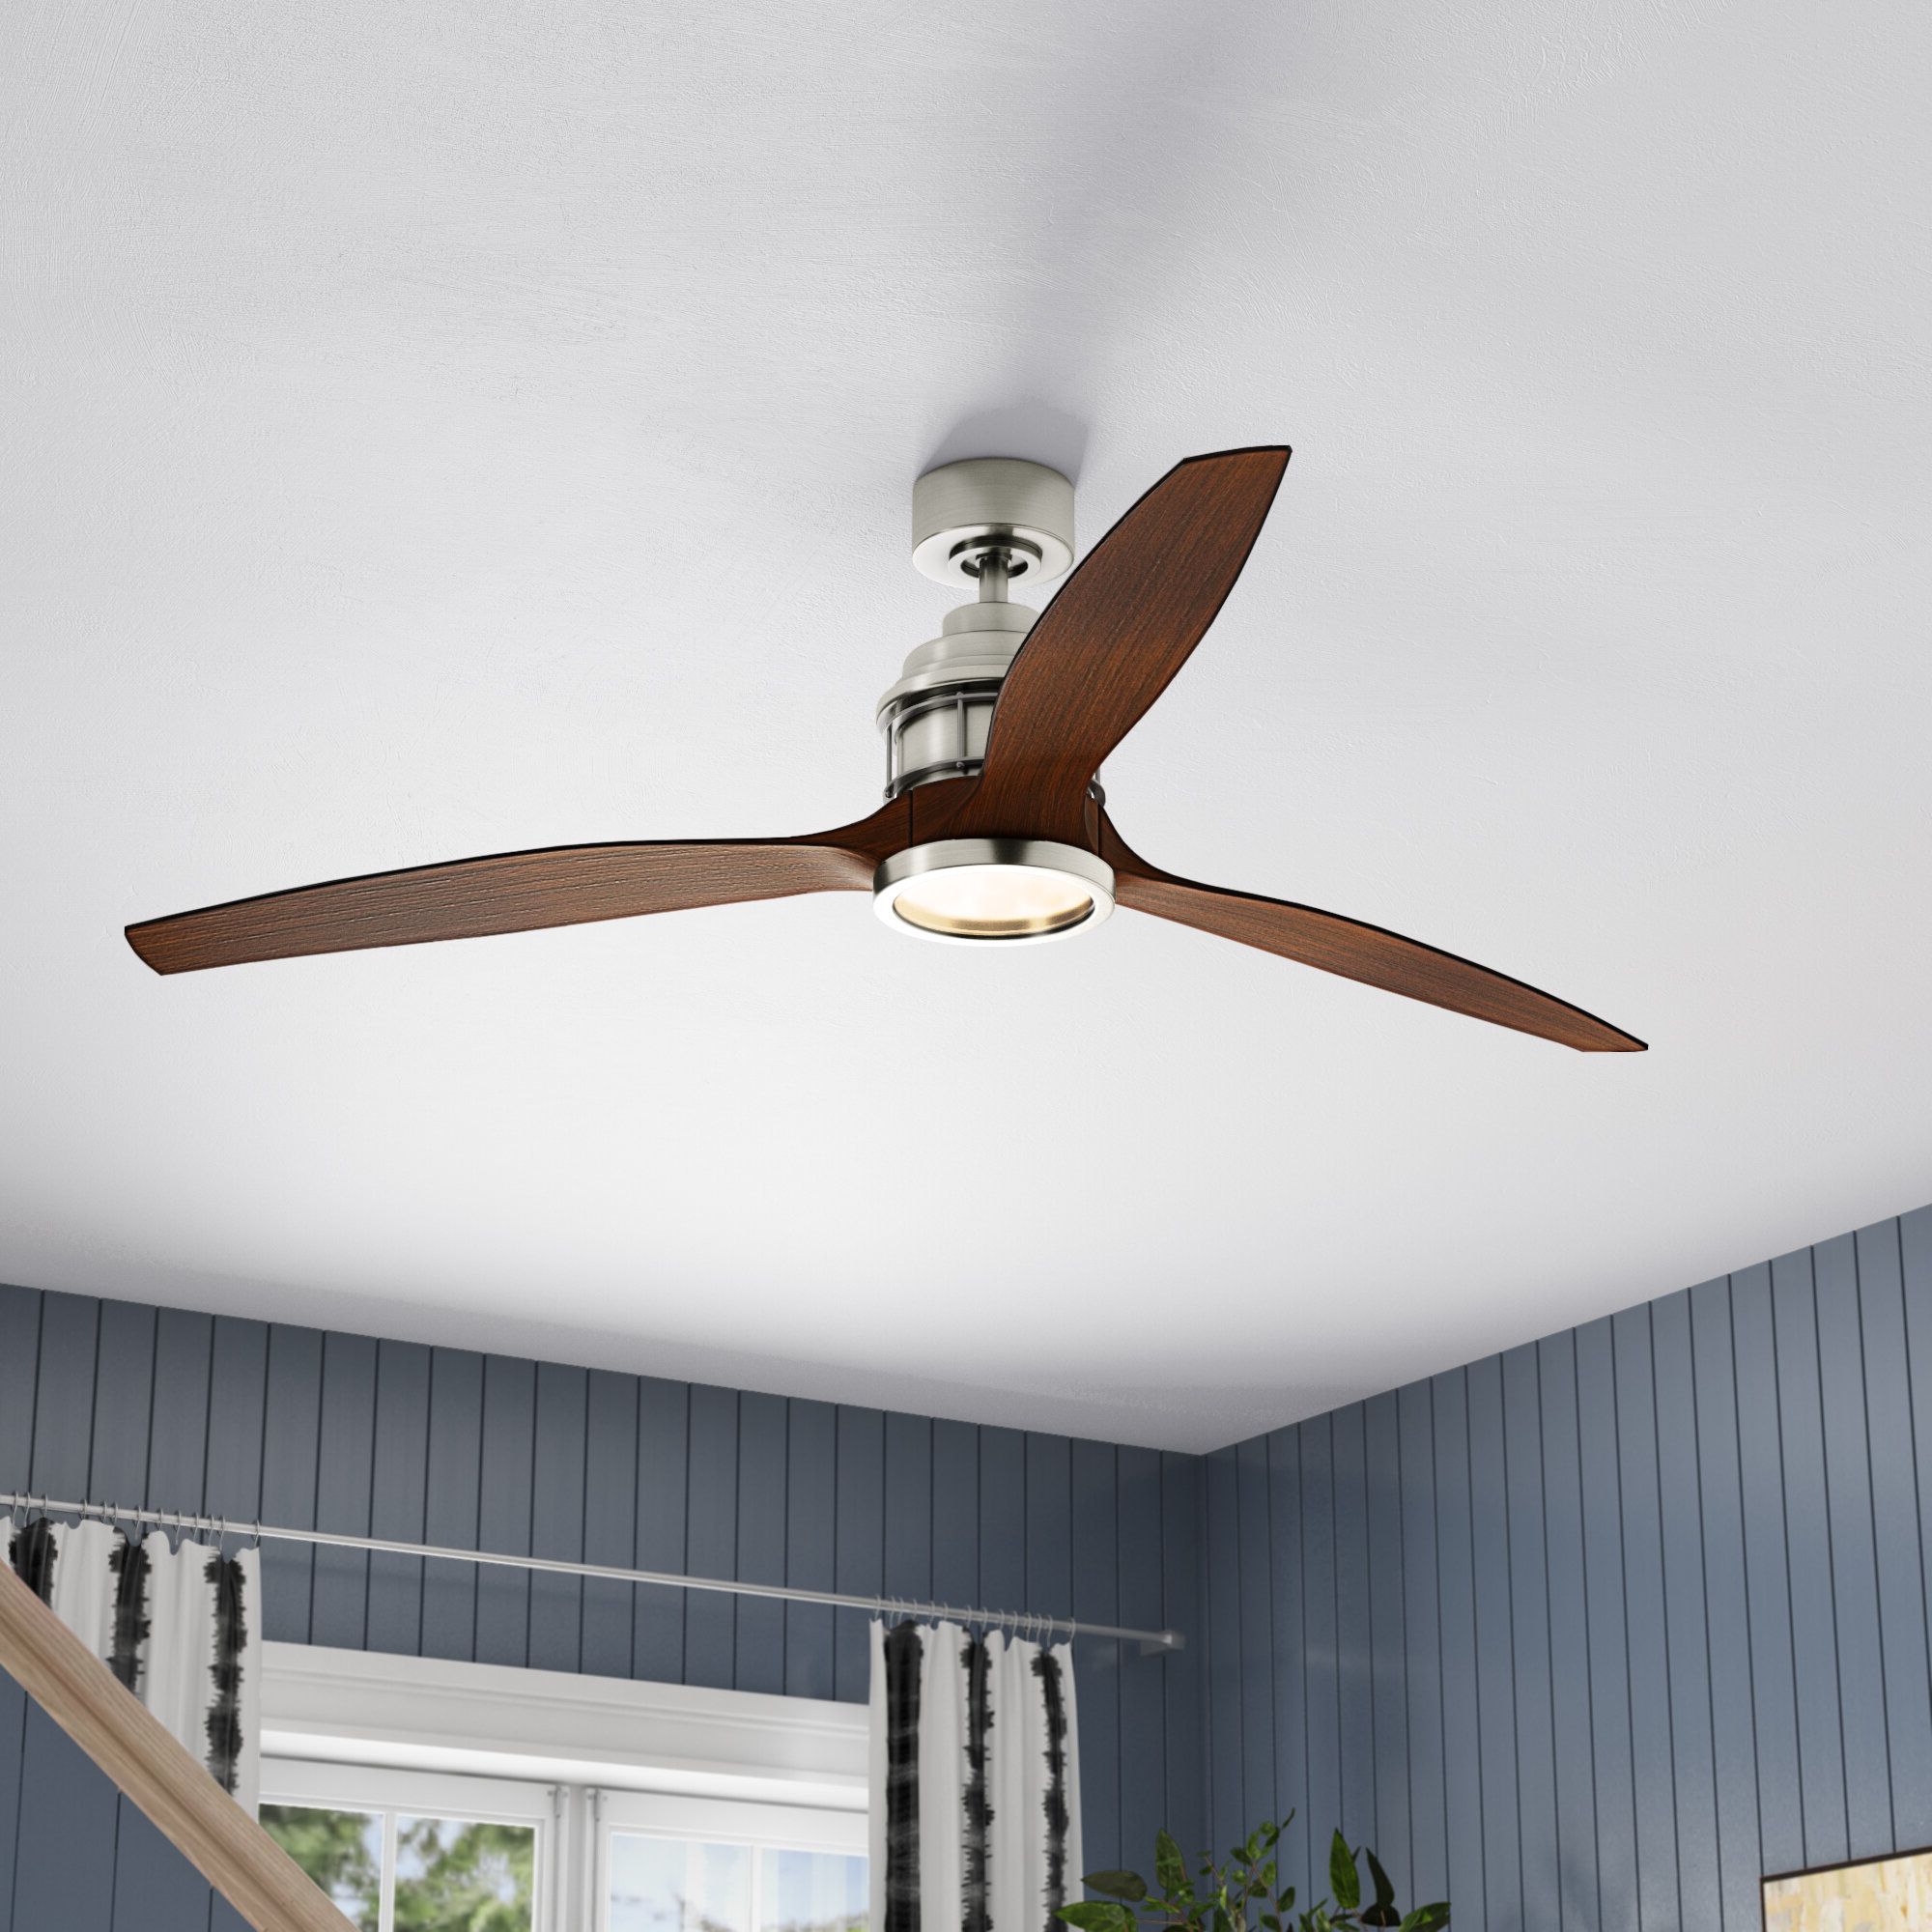 "Popular Cairo 3 Blade Led Ceiling Fans With Remote With Regard To 60"" Harmoneyq 3 Blade Ceiling Fan With Remote (View 16 of 20)"